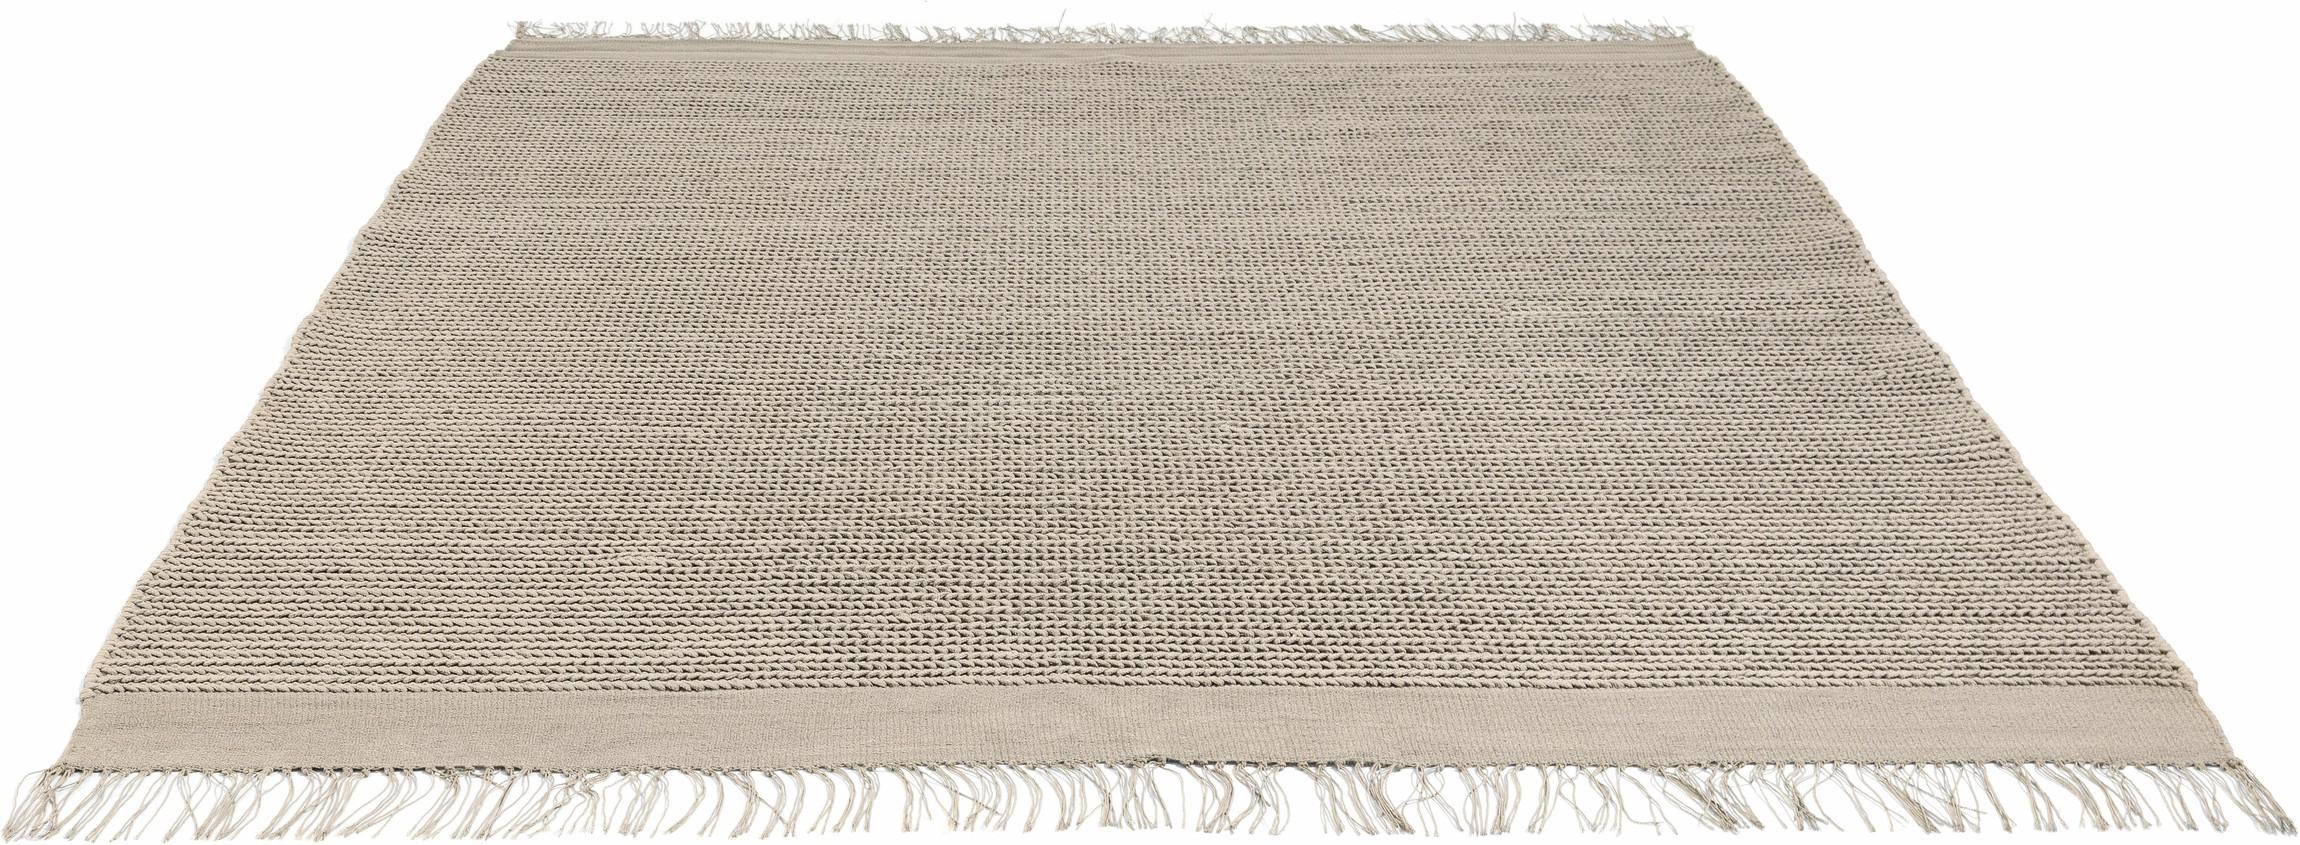 Rugs Twist 250x350 bronze